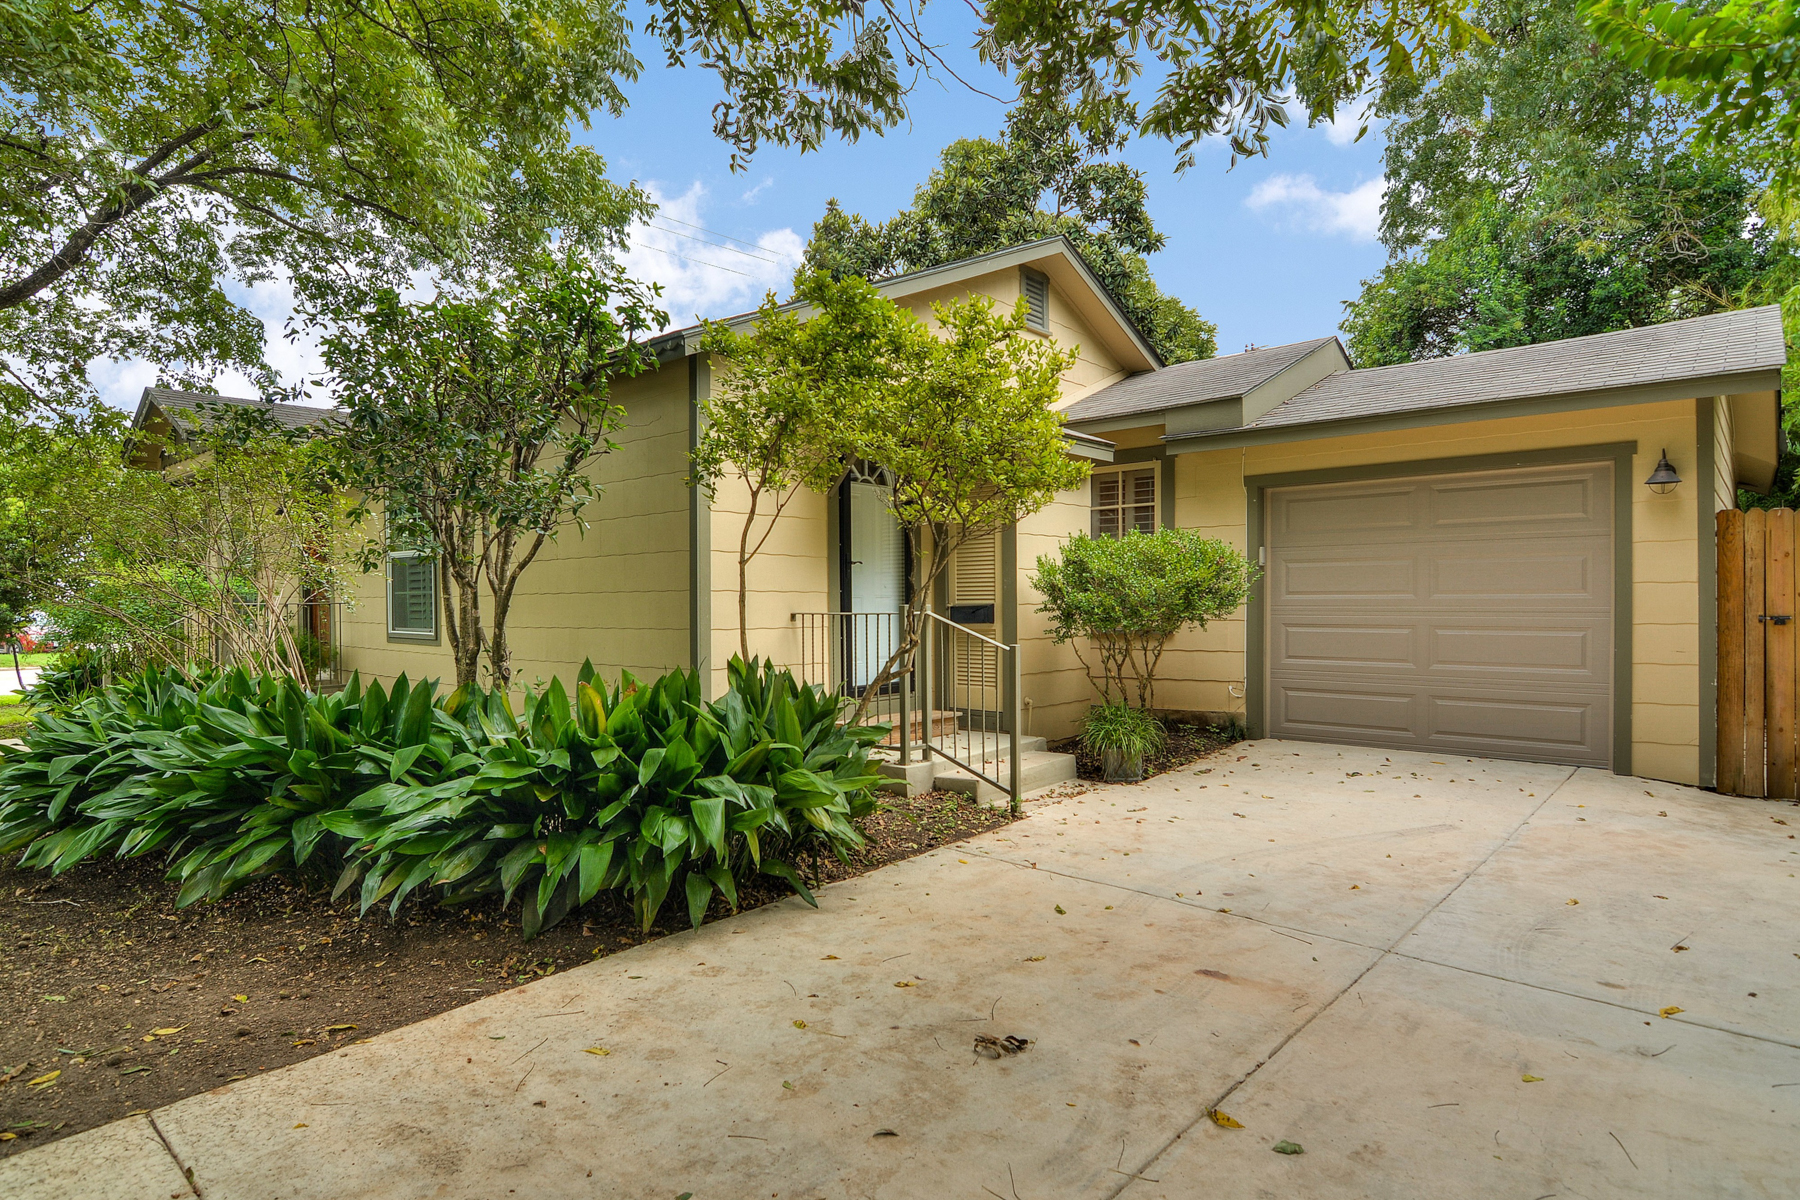 Additional photo for property listing at Charming Home in Alamo Heights 280 E Fair Oaks Pl San Antonio, Texas 78209 Estados Unidos